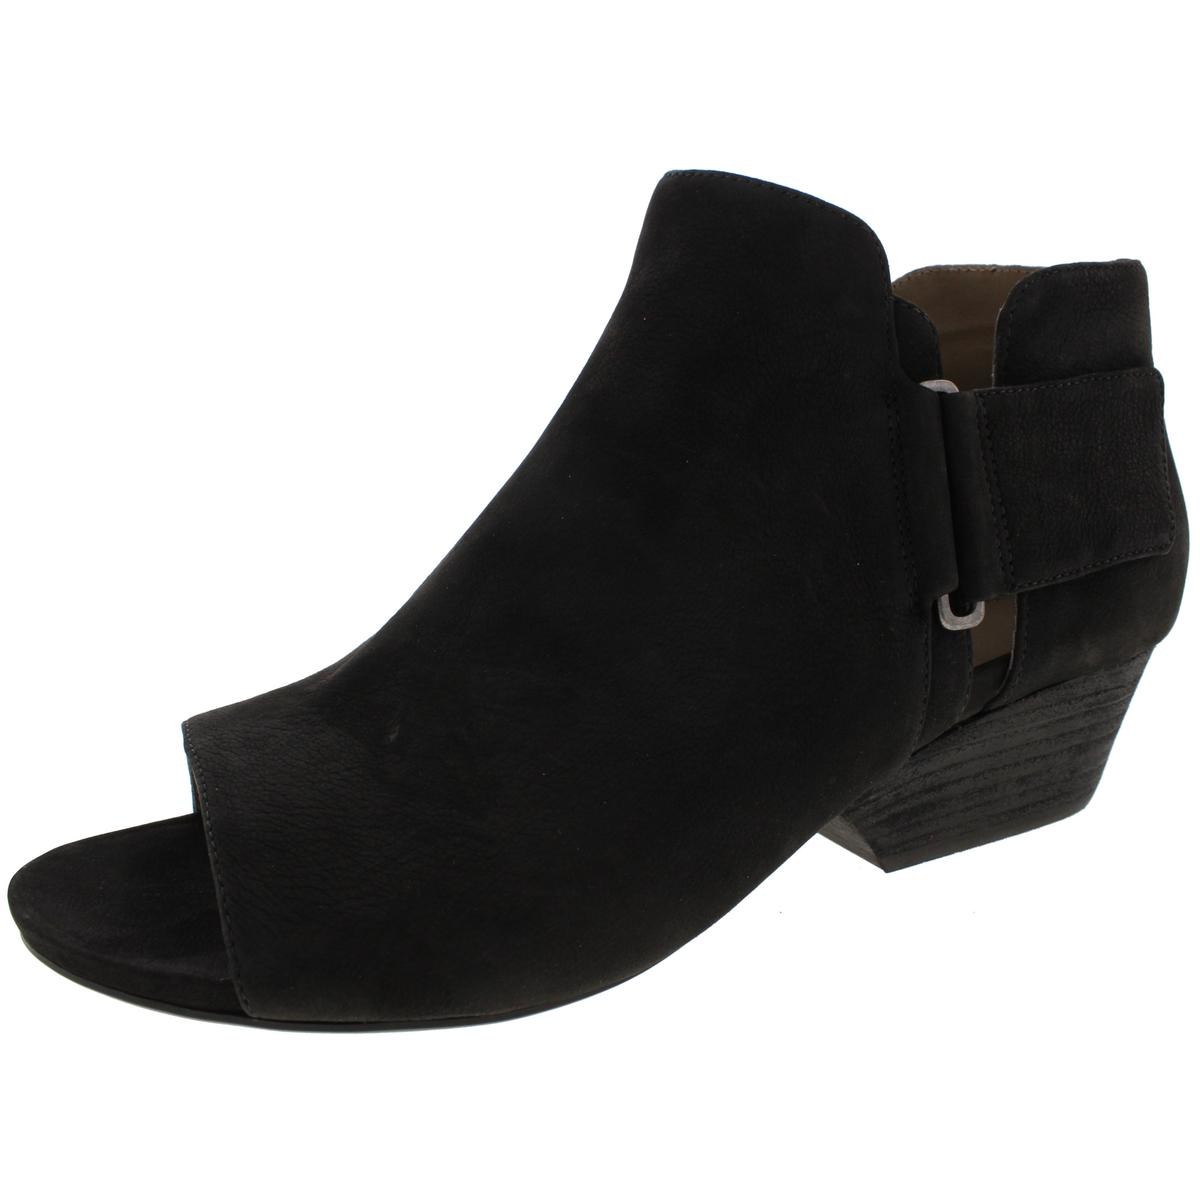 Naturalizer Women's Gemi Ankle Bootie Economical, stylish, and eye-catching shoes